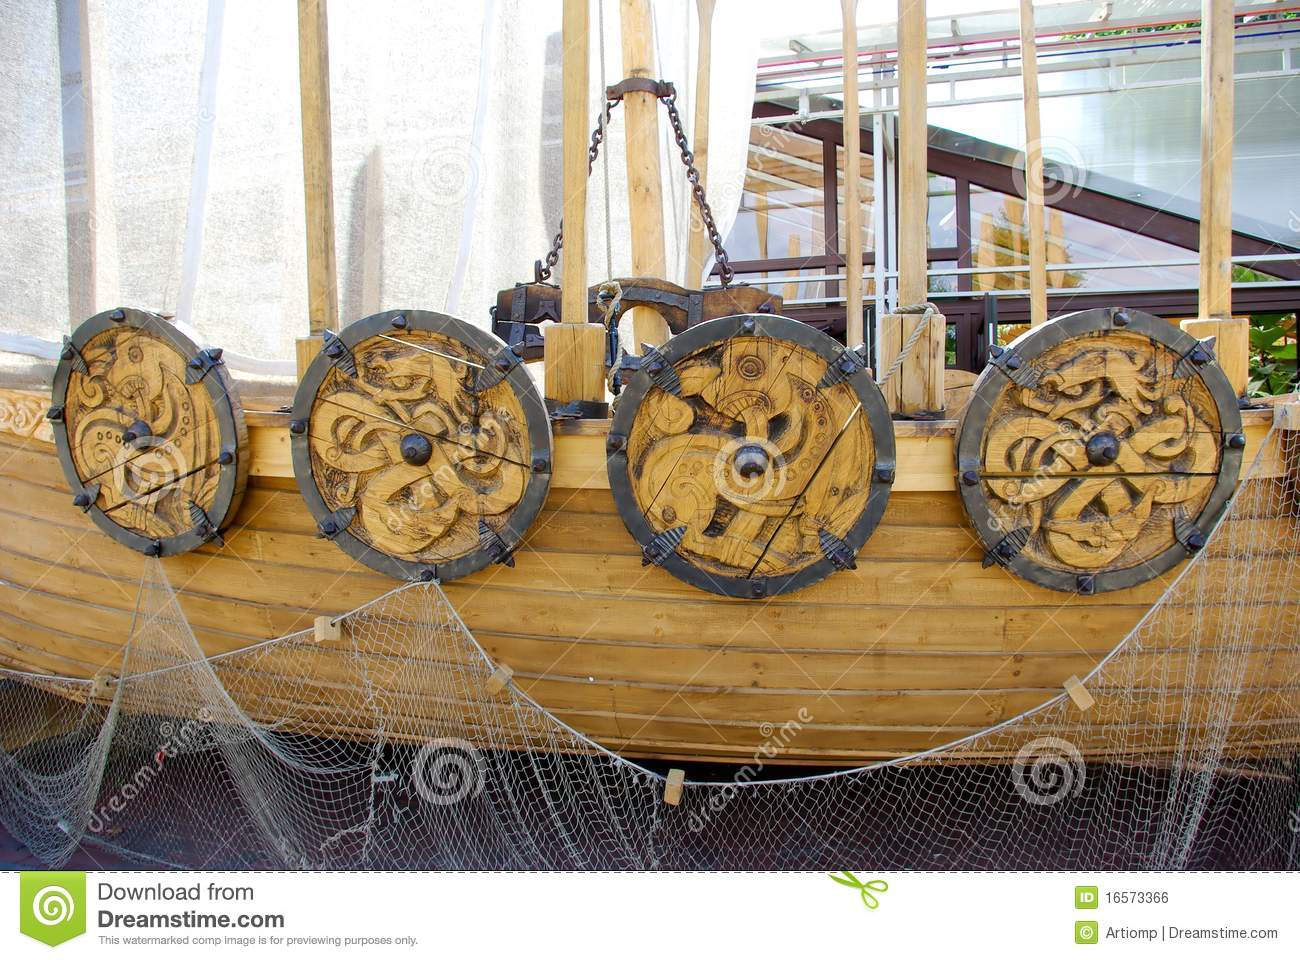 Viking ship details stock photo. Image of armoured, armed ...